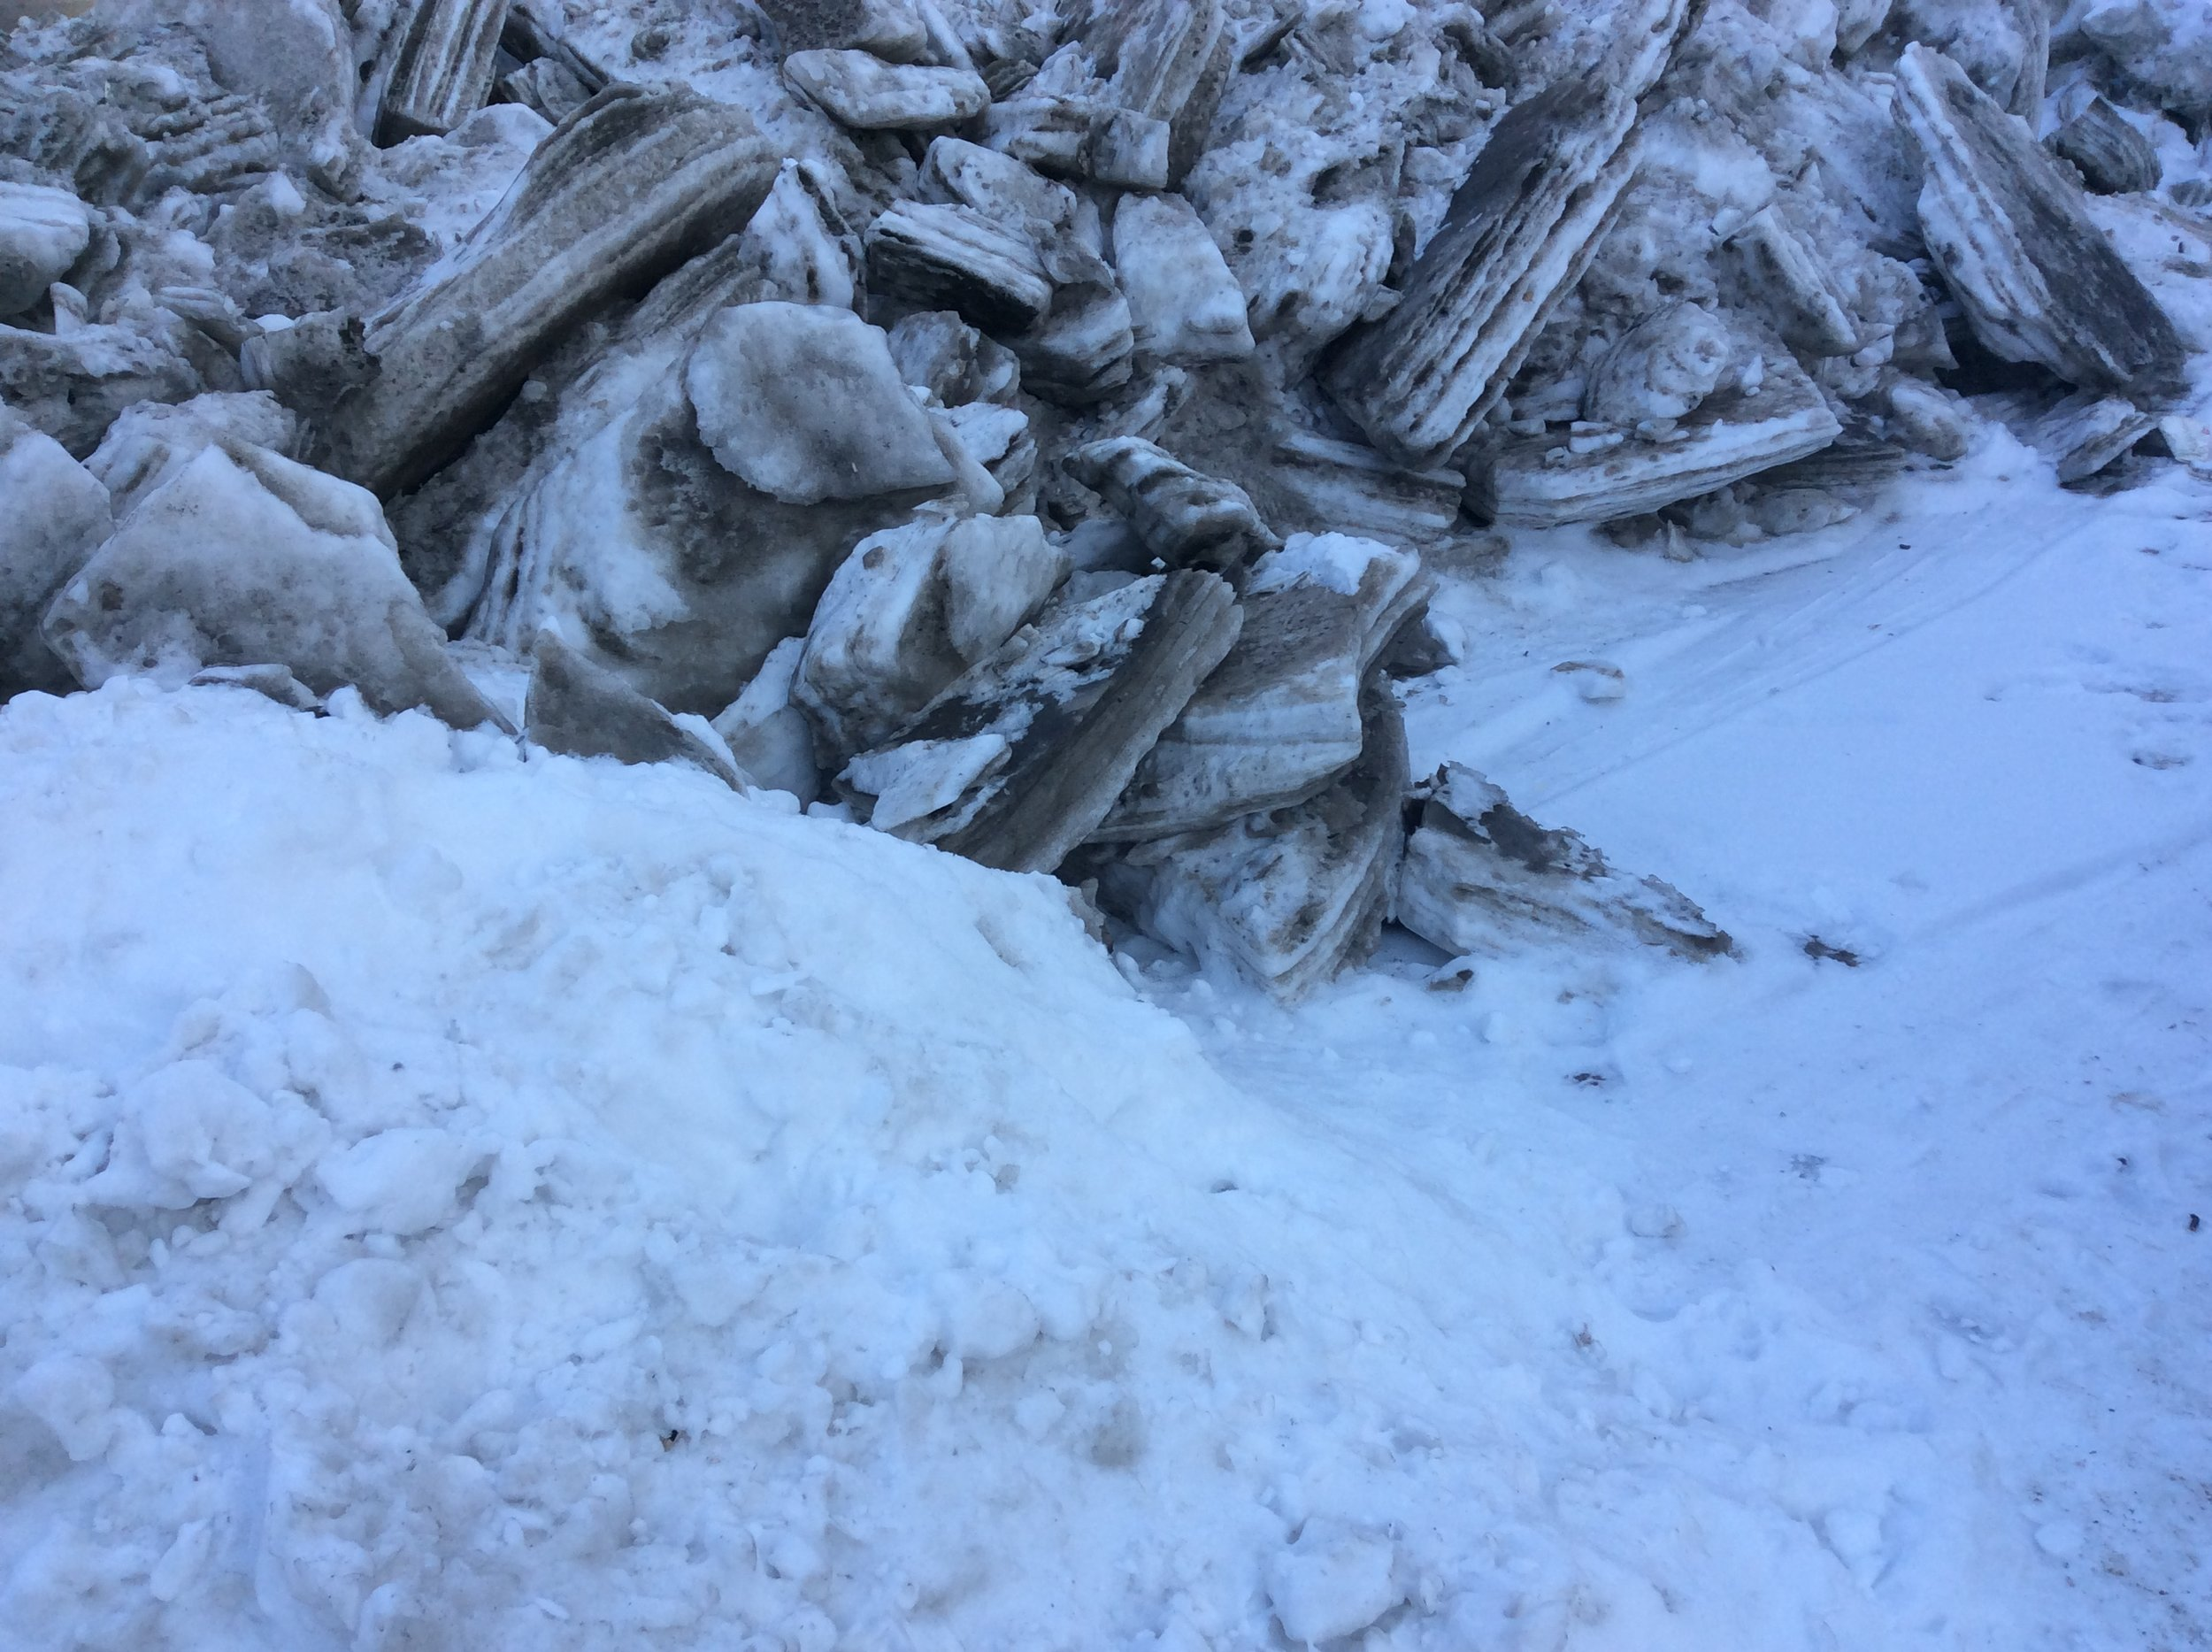 """The spring thaw means """"ice pyramids"""" everywhere: these chunks of ice spent the last five months coating a sidewalk. Now, they'll be scooped up and dumped outside from the city. The striations are mostly sand, which was poured on the sidewalks periodically to aid walkers in navigating the ice."""